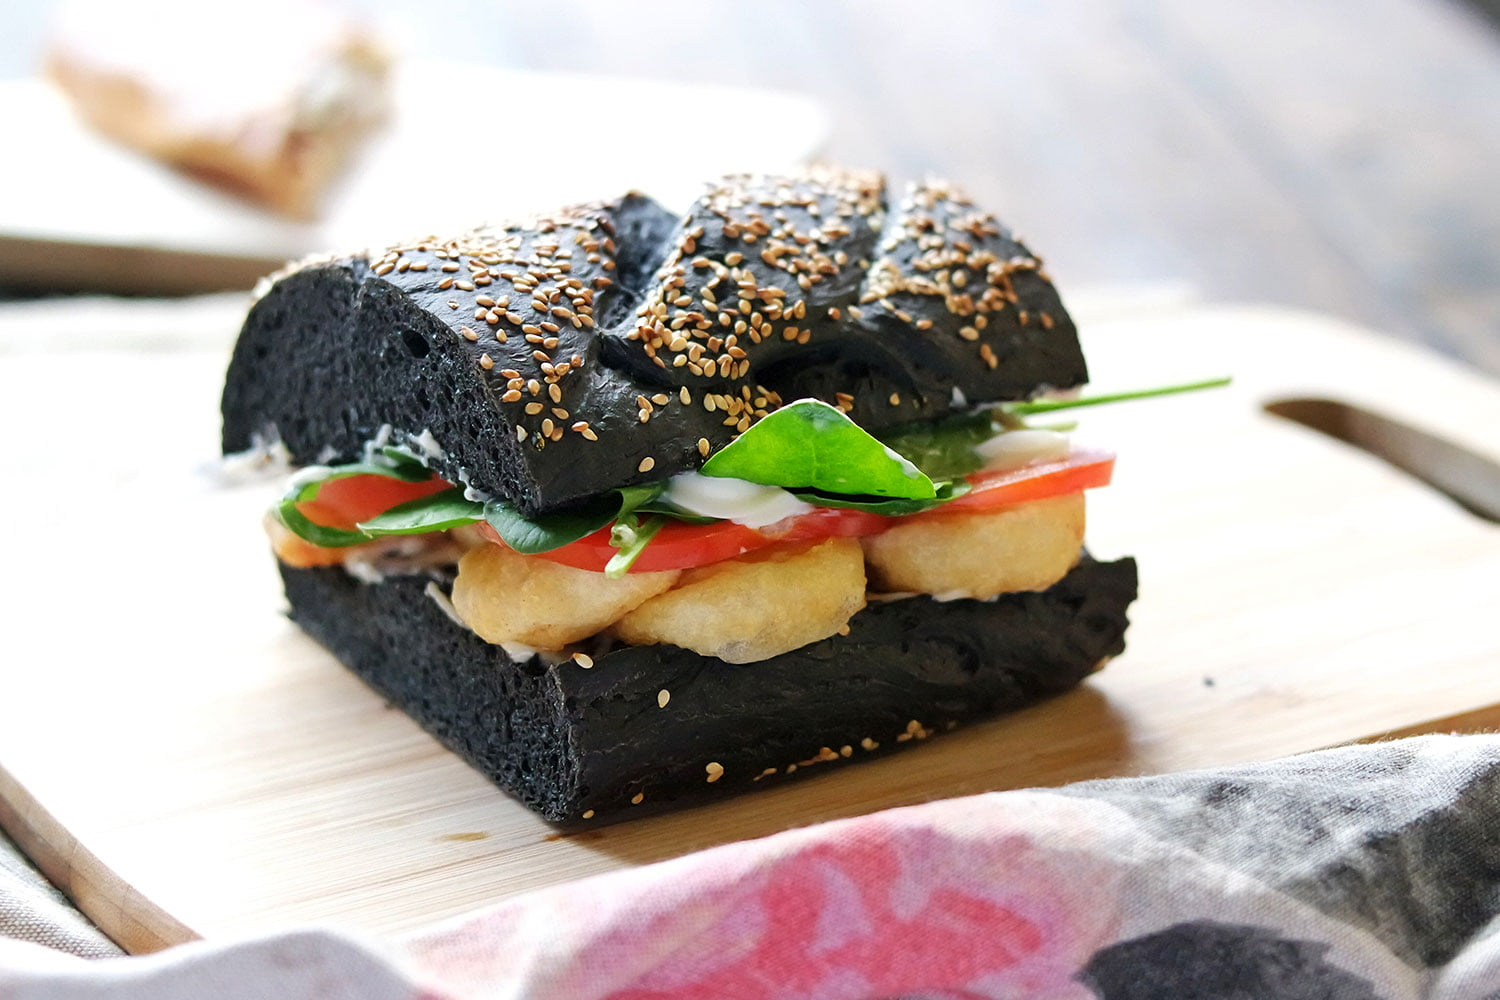 Shrimp sandwich made with battered shrimp, kewpie mayo, tomato, lettuce, on black squid ink bread.